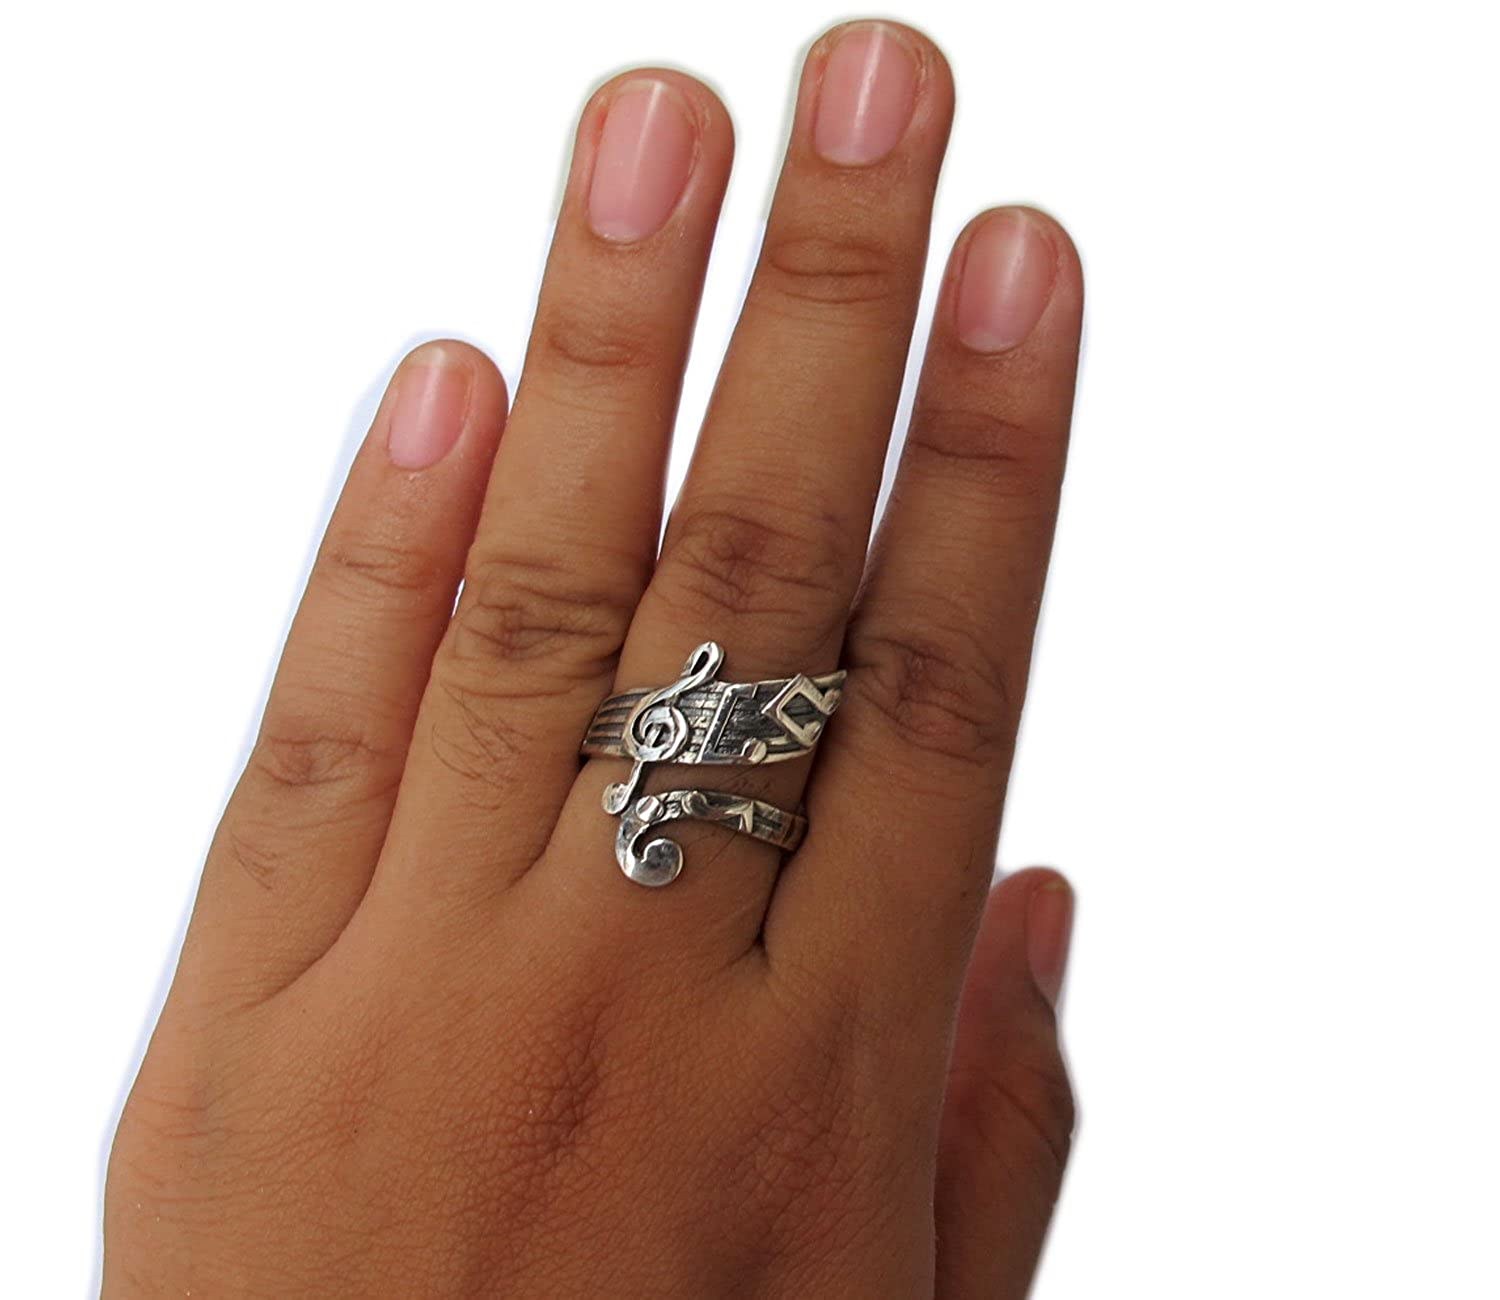 VERY BEAUTIFUL THAI SILVER CLASSIC RING SIZE NO.7 { WITHOUTSTONE STERLING BOX 18 } Welcome Free Shipping 92.5 SILVER WEIGHT 4.97 G